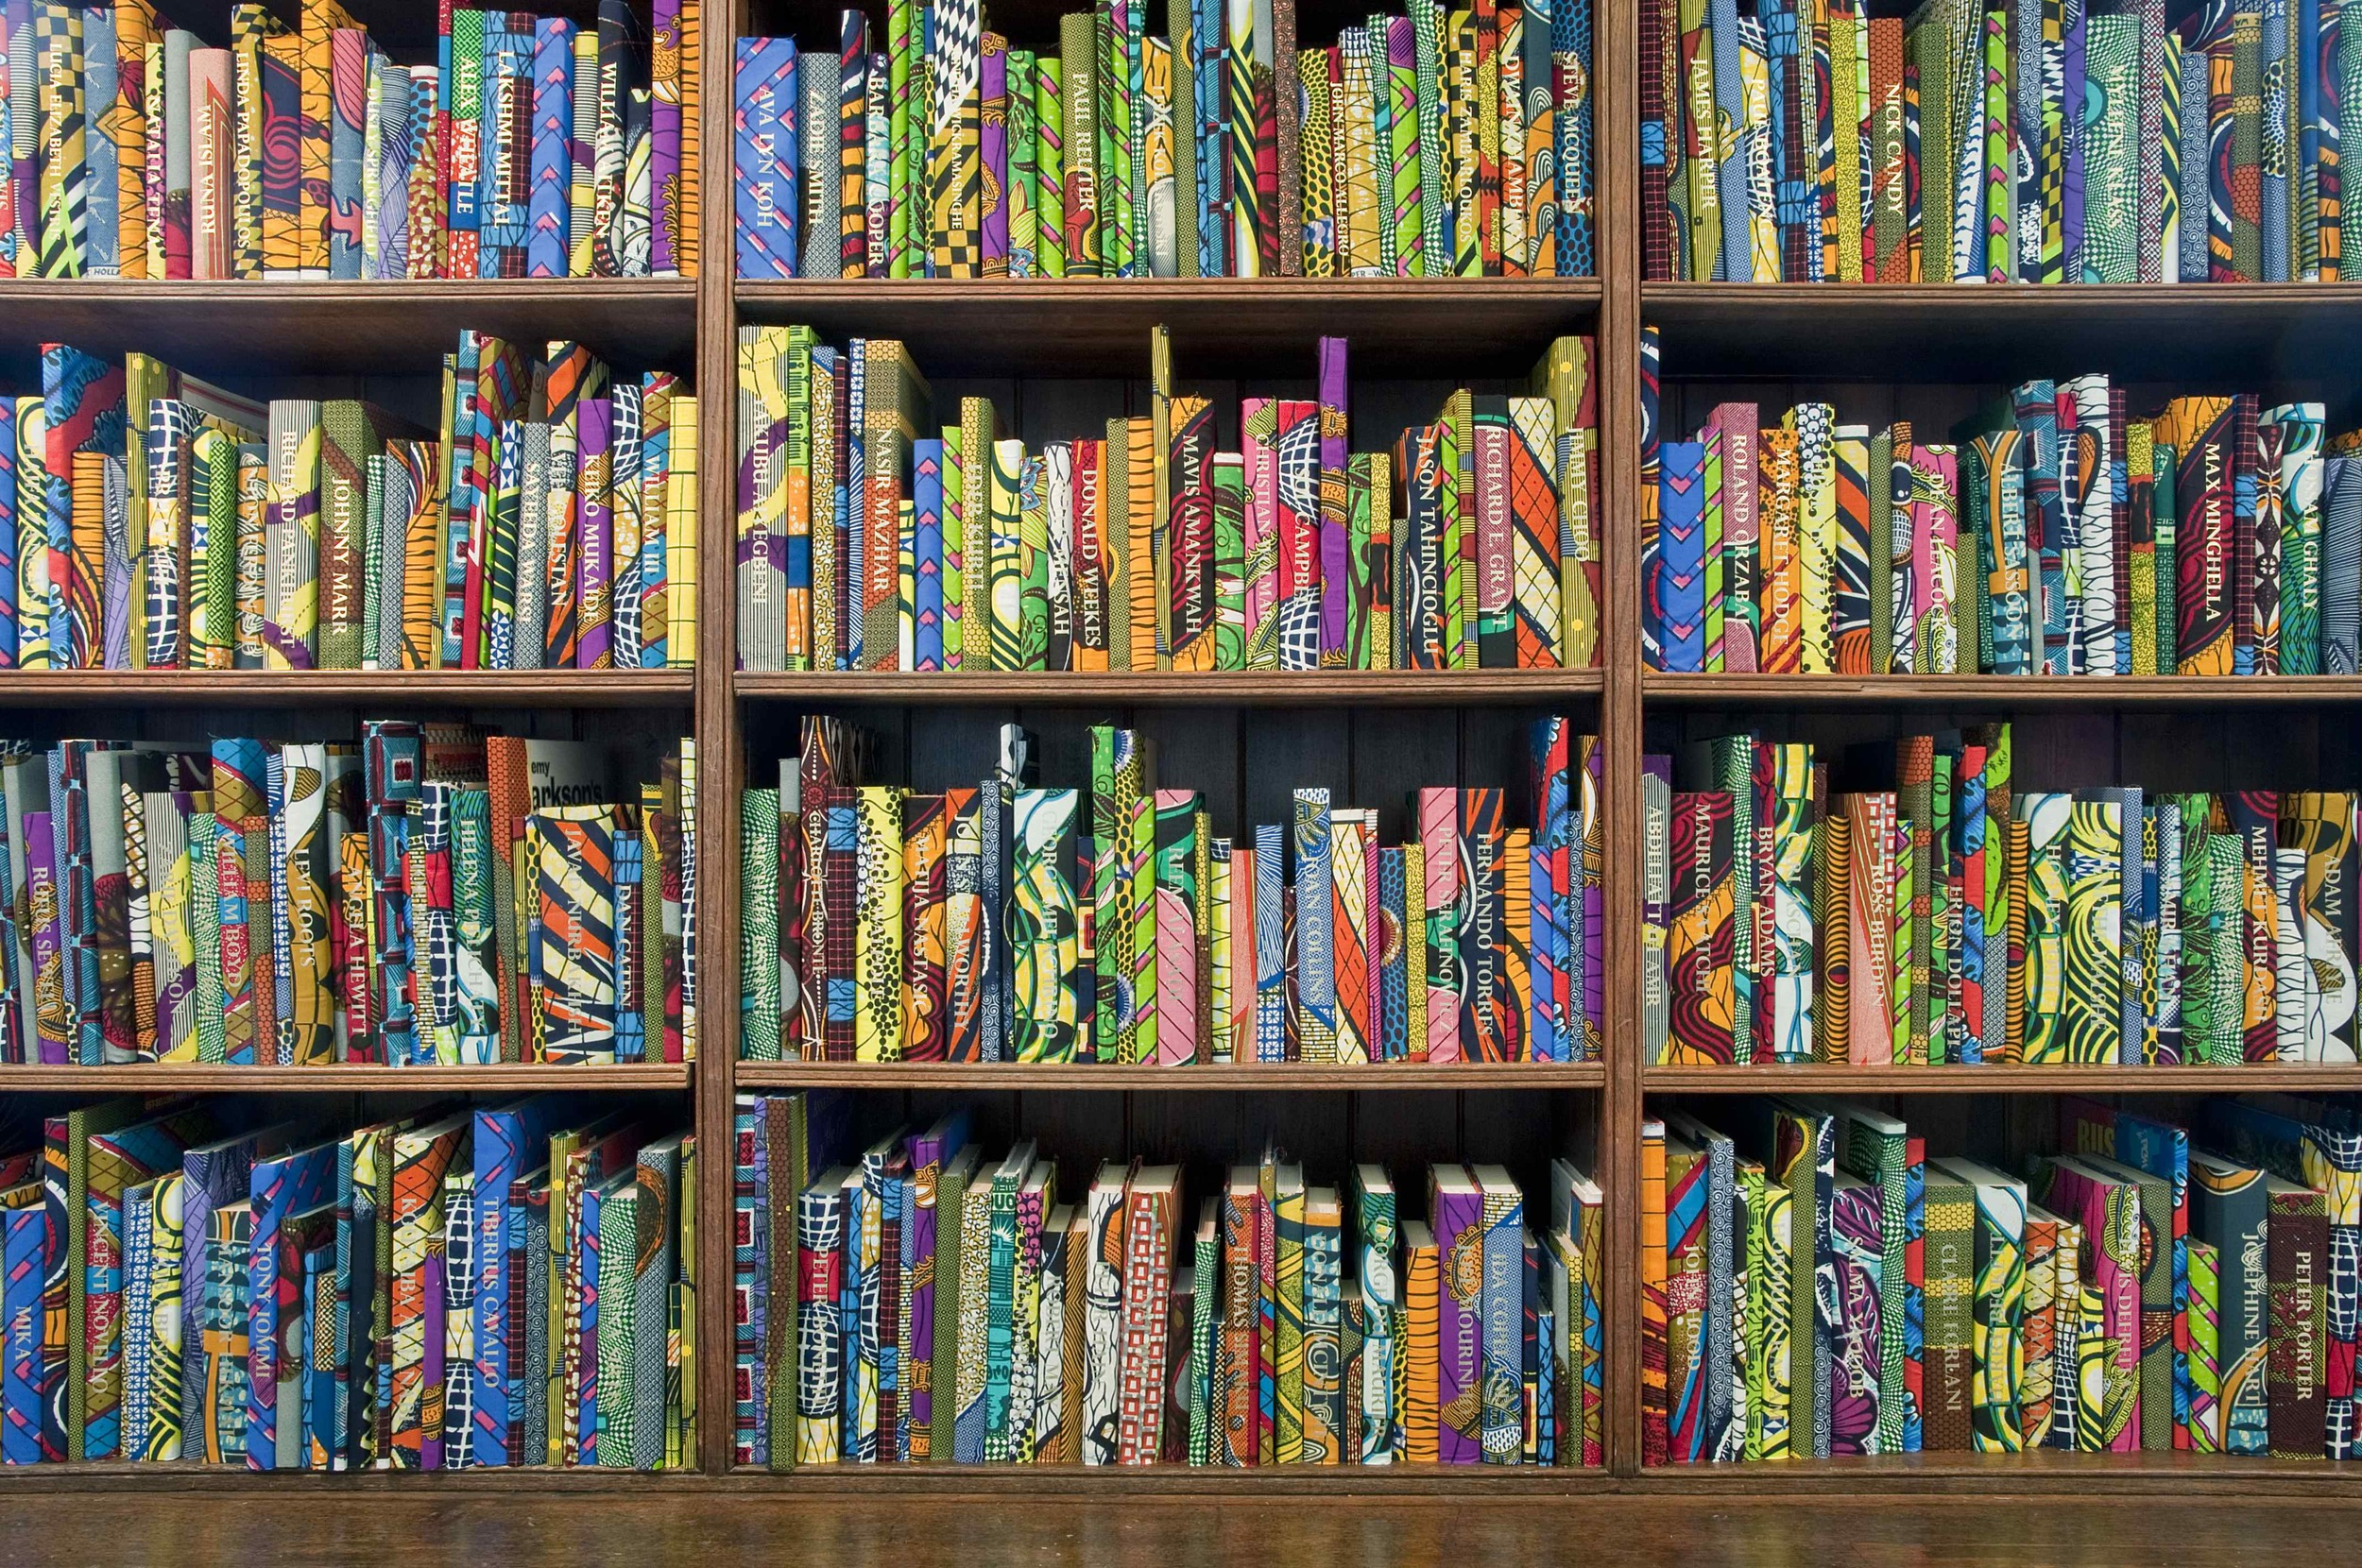 The_British_Library_Yinka_Shonibare_MBE__2014_HOUSE_2014_photo_credit_Nigel_Green_2_1.jpg&preset=fullscreen.jpg